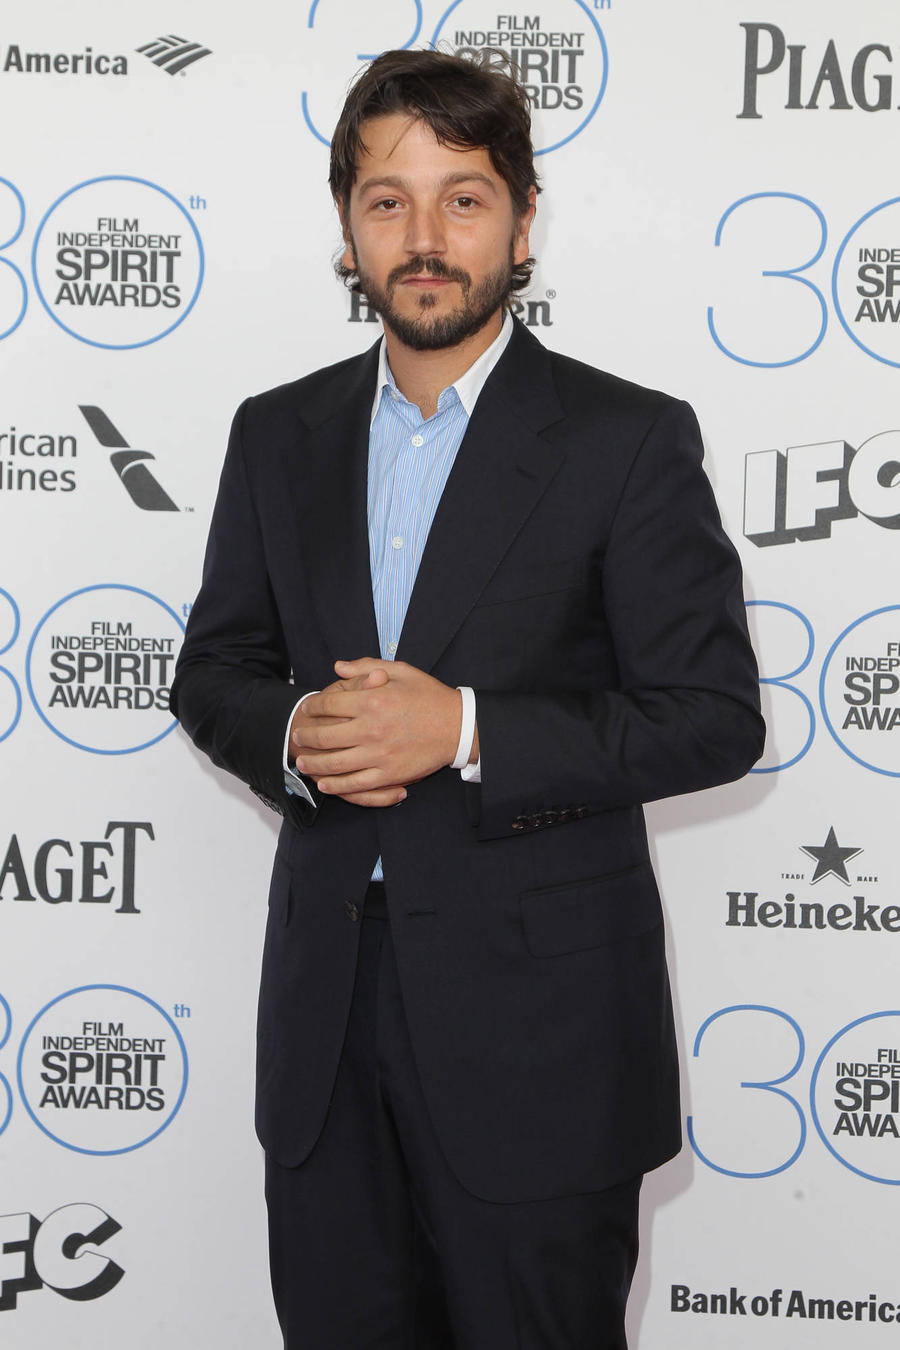 Diego Luna Revelled In Military Training For Star Wars Prequel